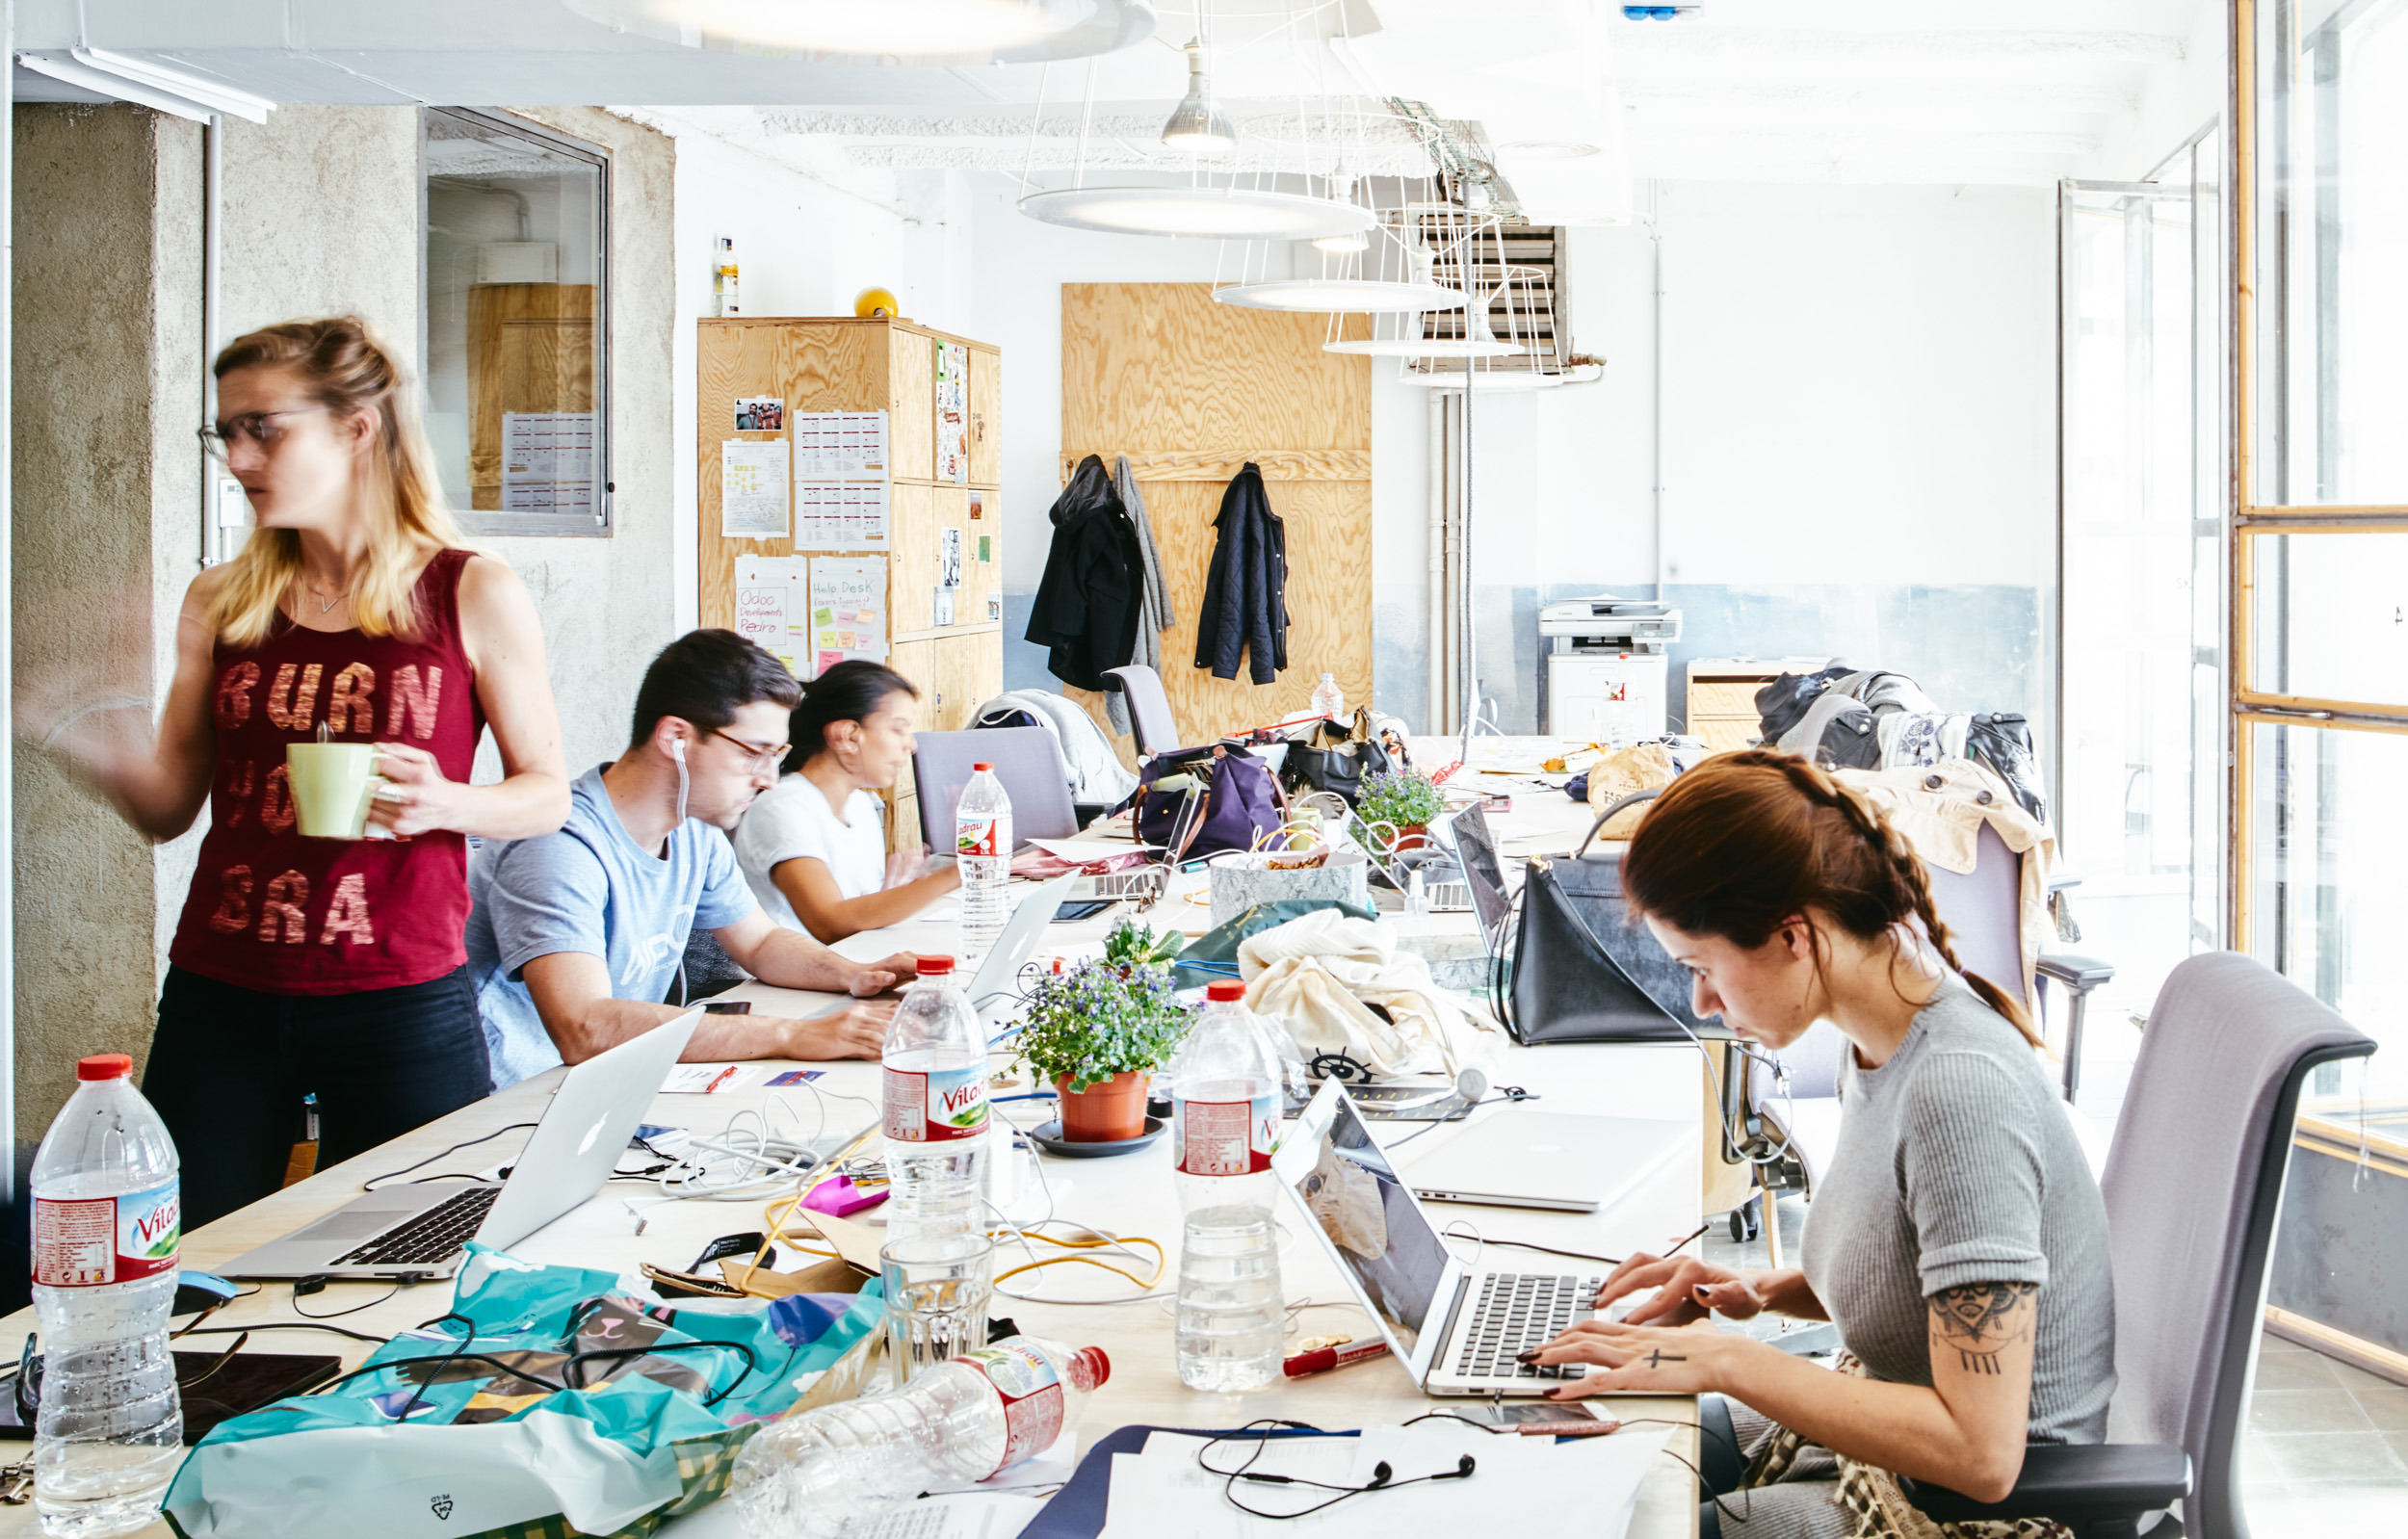 Coworking Betahaus in Barcelona an example of sharing economy